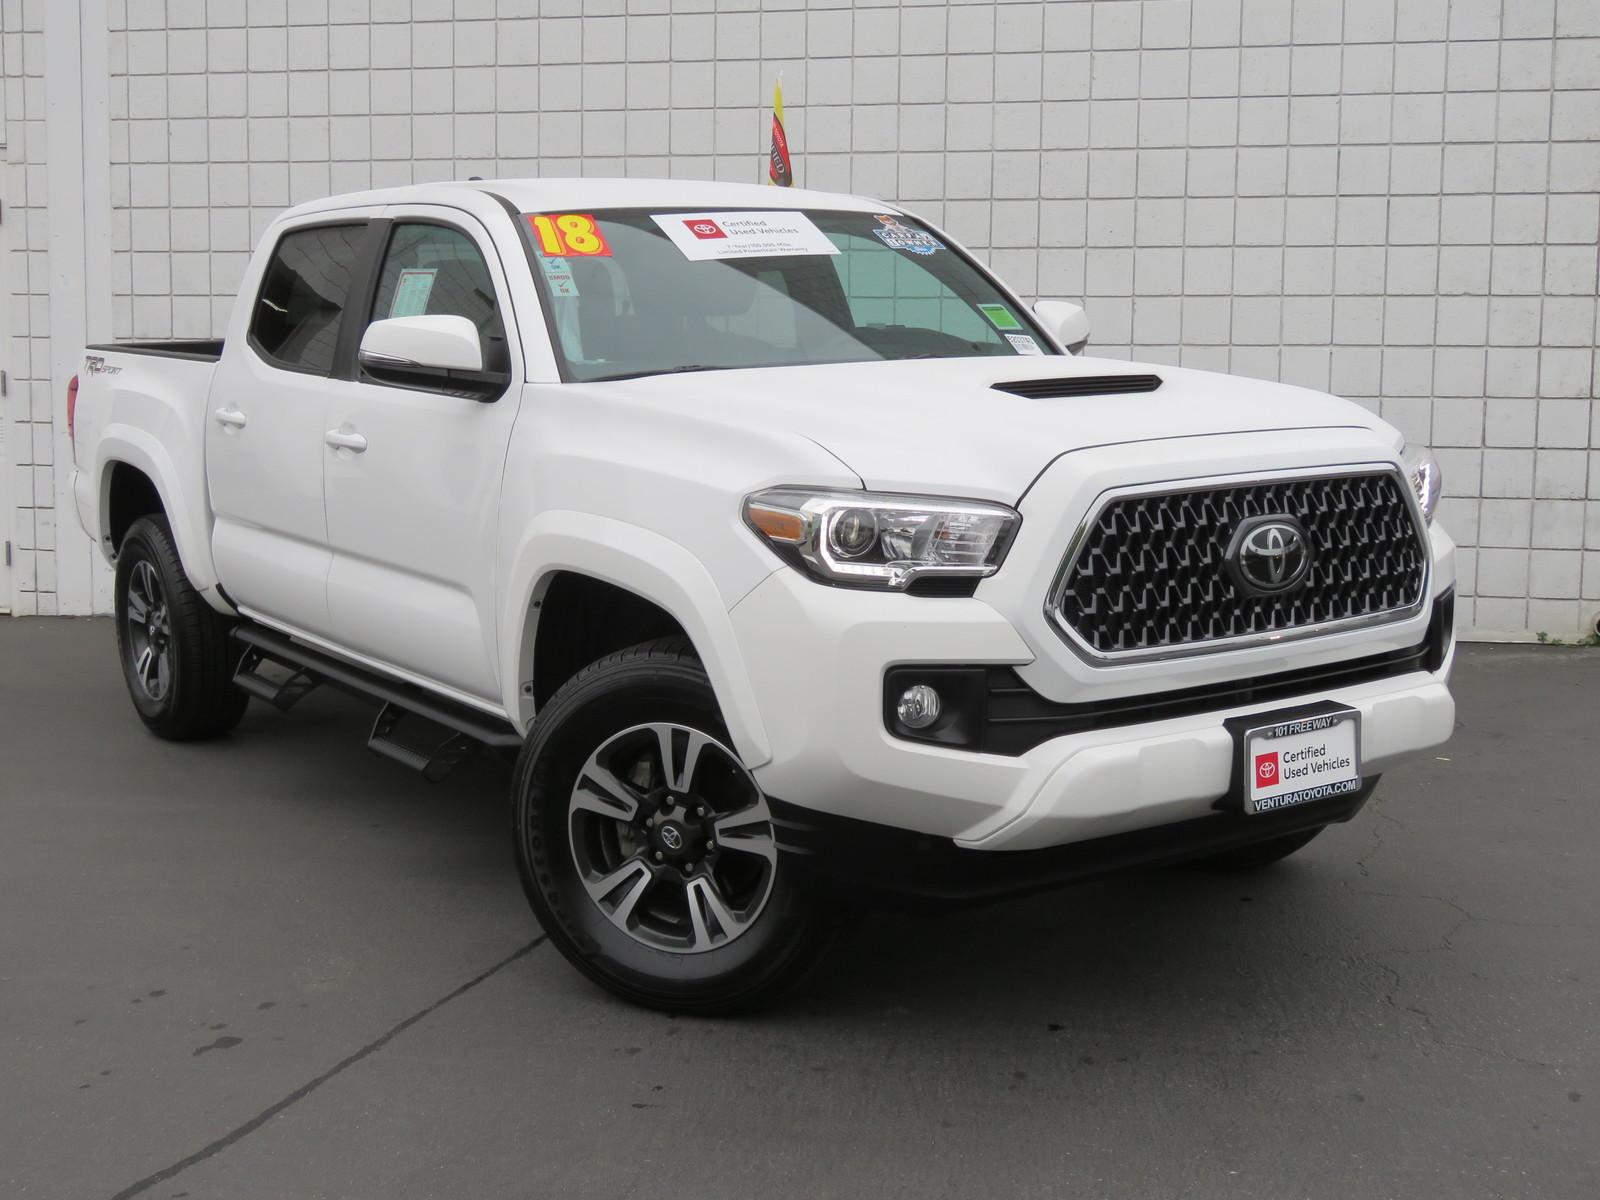 Certified Pre-Owned 2018 Toyota Tacoma TRD Sport Double Cab 5' Bed V6 4x2